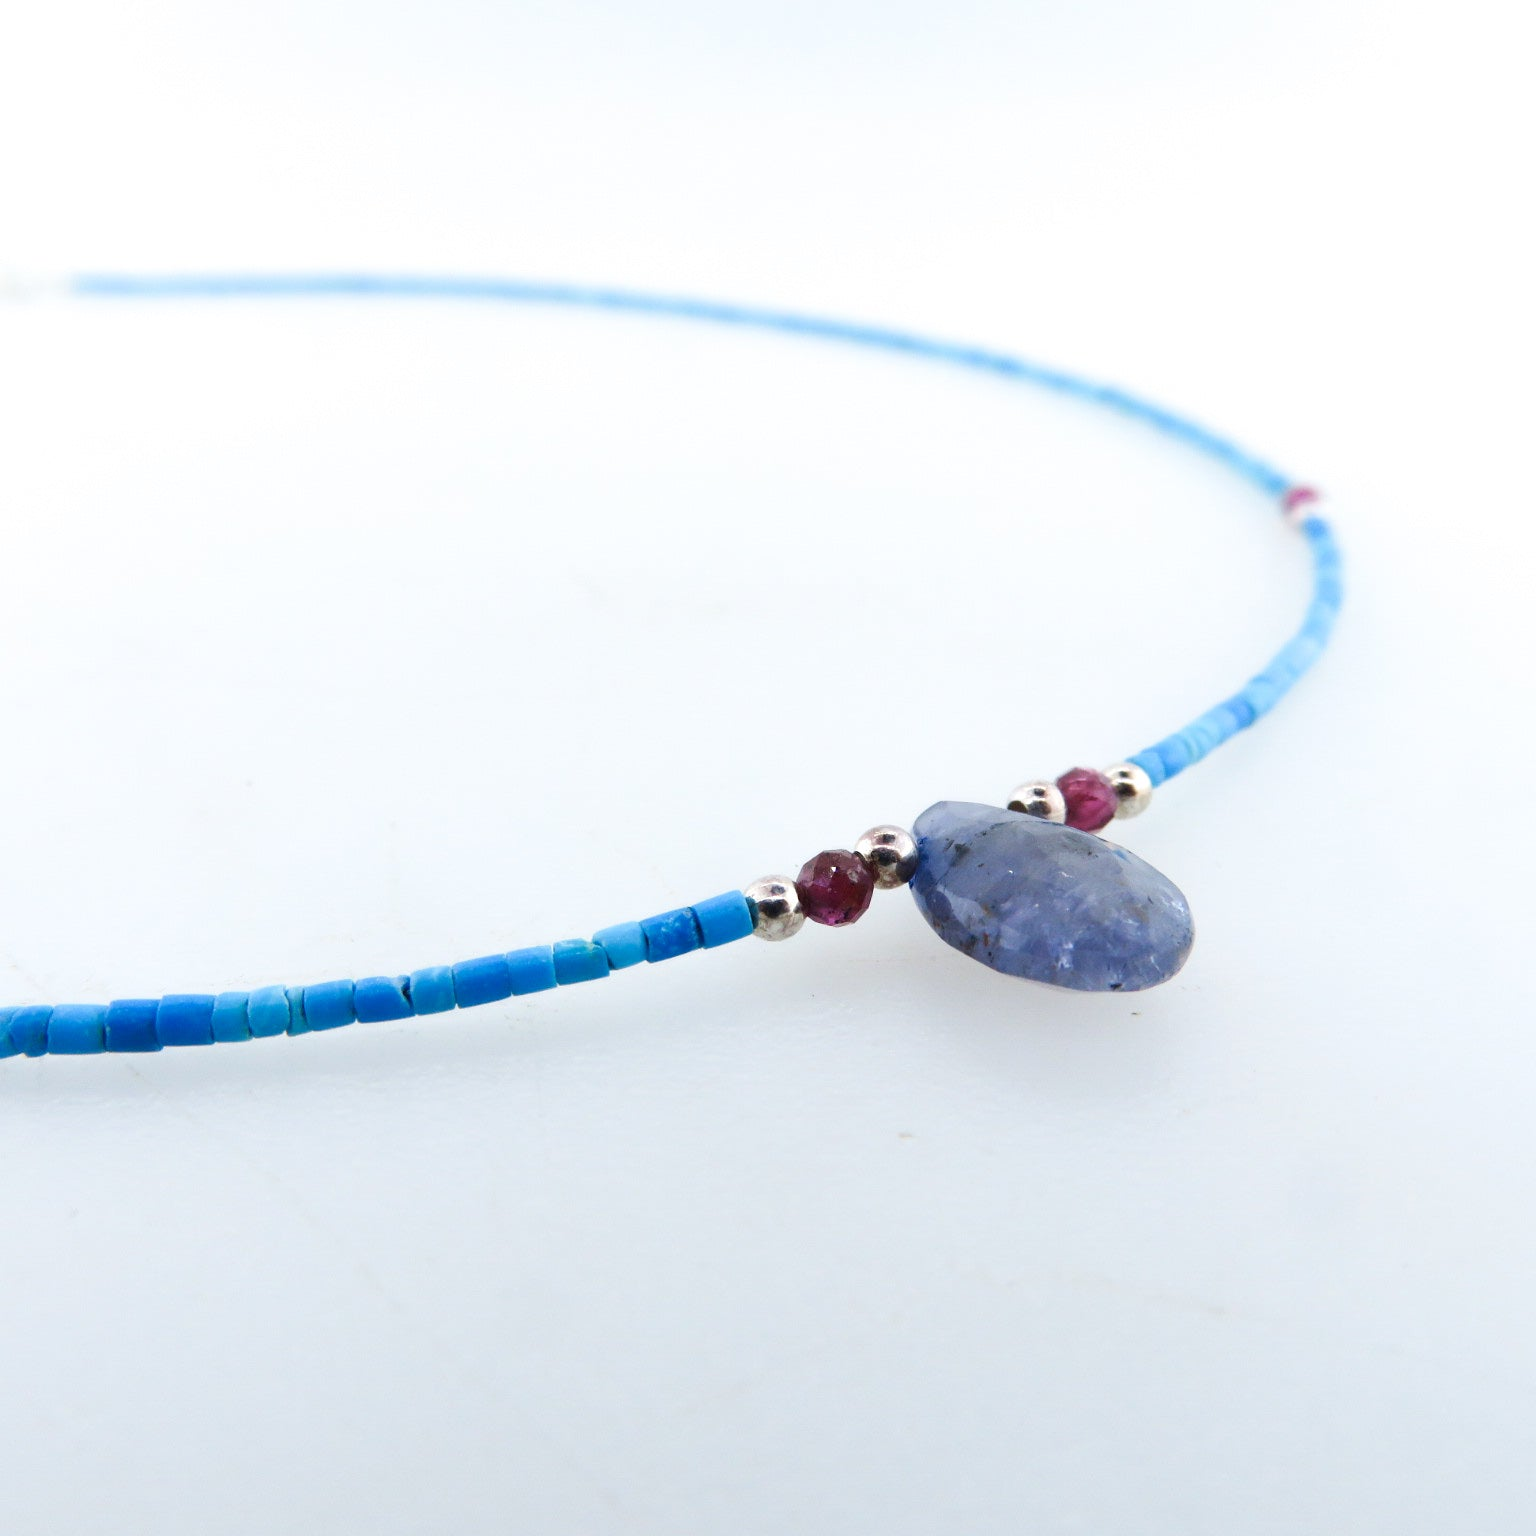 Turquoise Necklace with Iolite, Garnet and Silver Beads